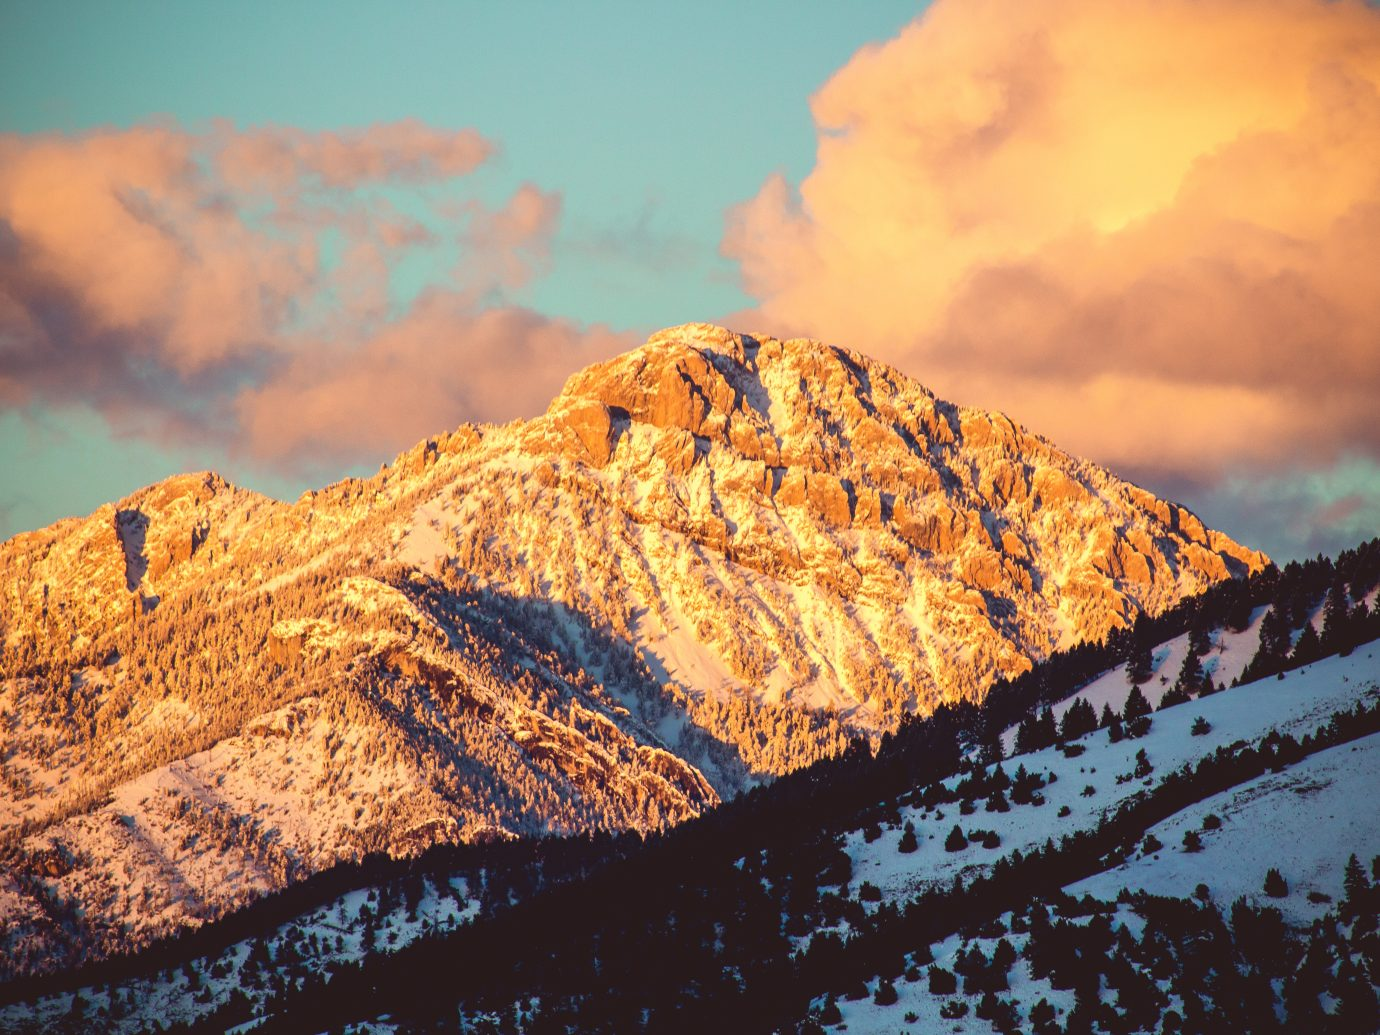 A sunset shines on the top of Ross Peak, in Bozeman, Montana.